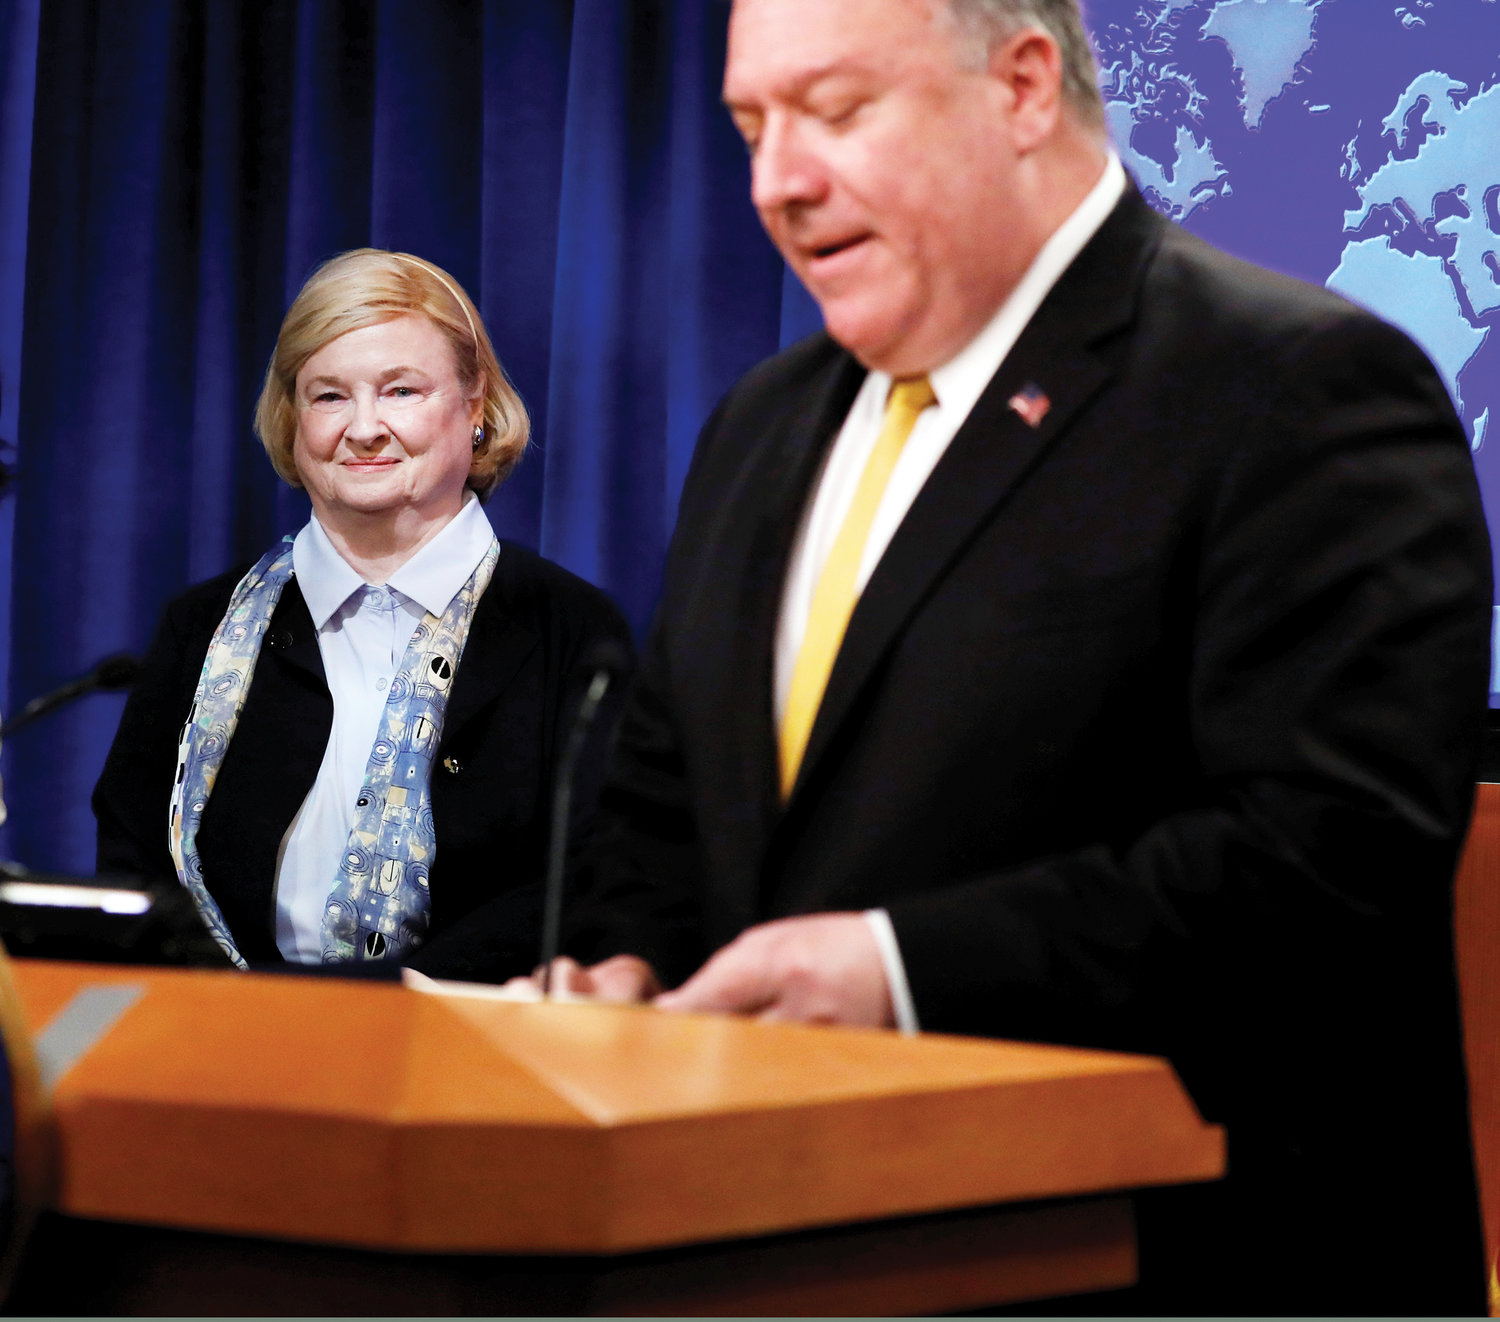 CHAIRWOMAN—U.S. Secretary of State Mike Pompeo introduces Mary Ann Glendon, former U.S. ambassador to the Vatican, as the head of the Commission on Unalienable Rights at a news conference July 8 at the State Department in Washington, D.C.